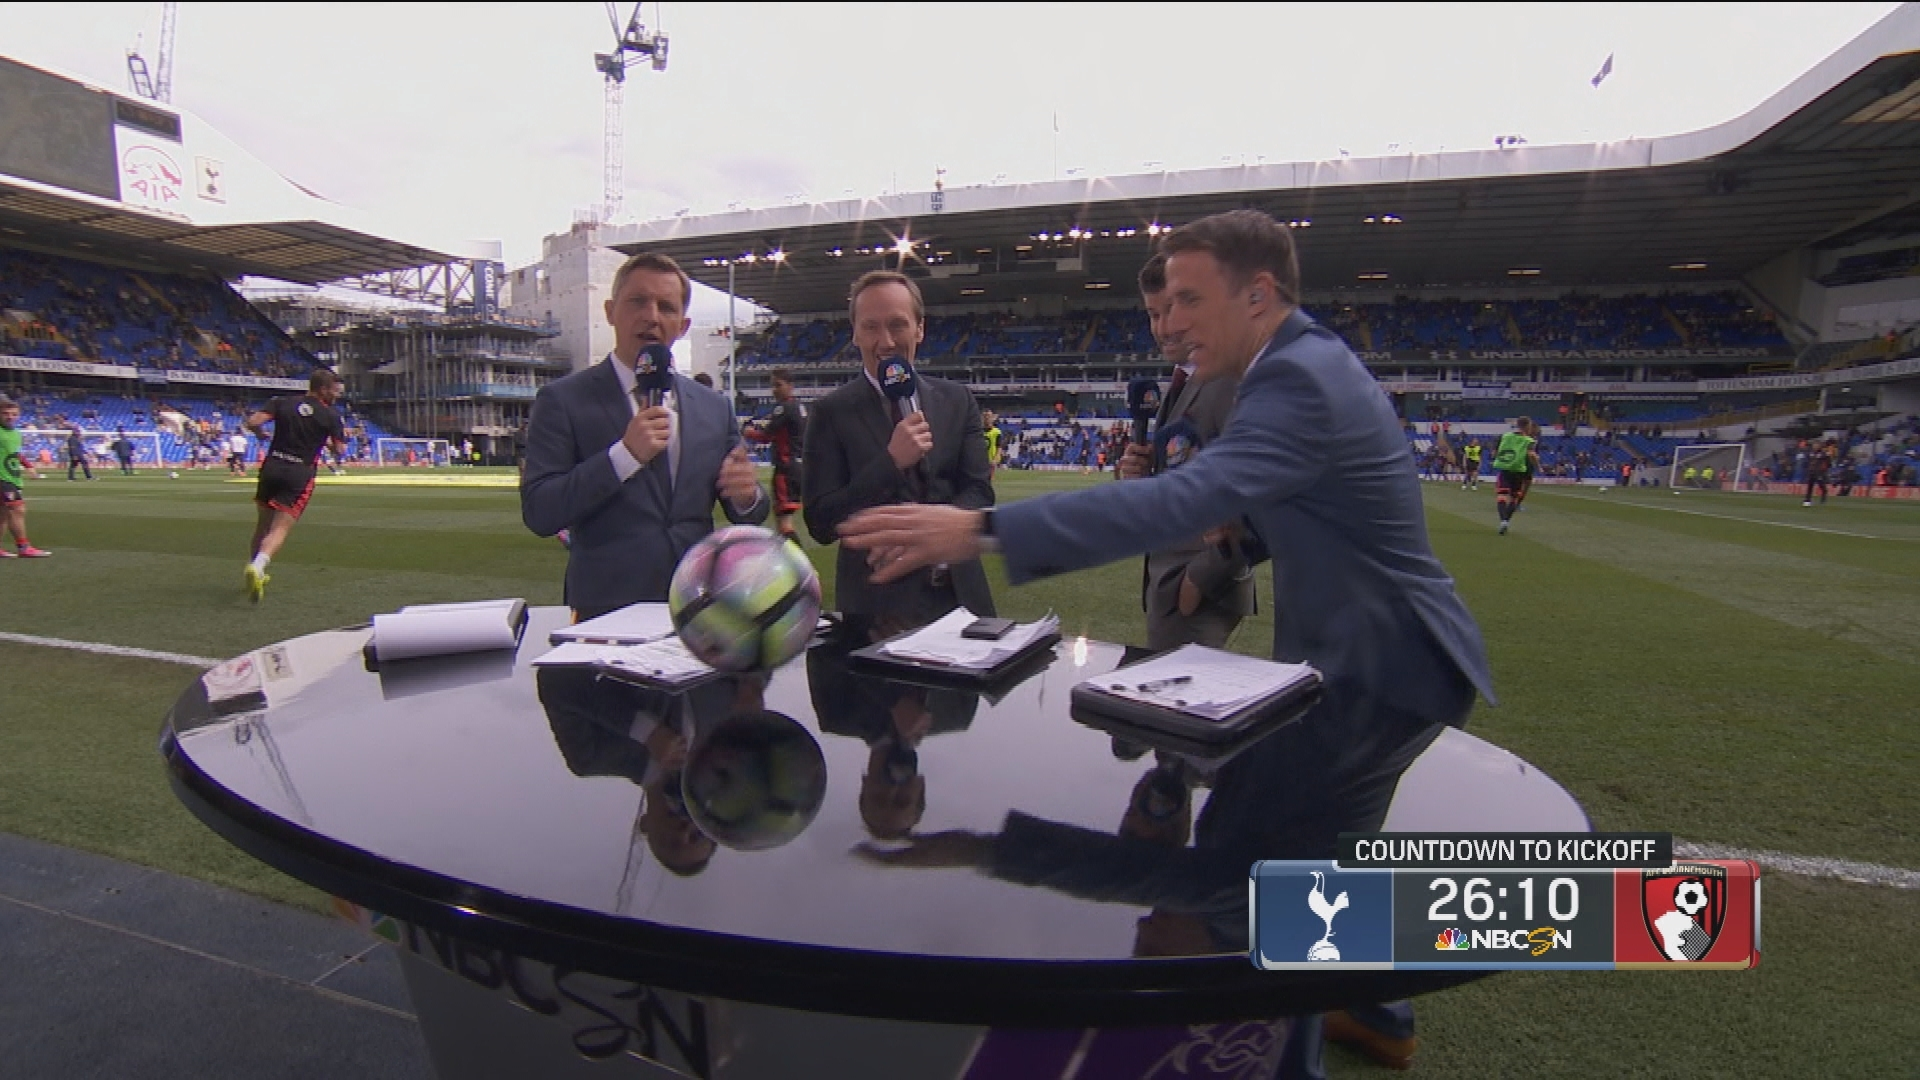 Stray Ball From Bournemouth Warm Ups Interrupts Pitchside Desk Coverage Nbc Sports